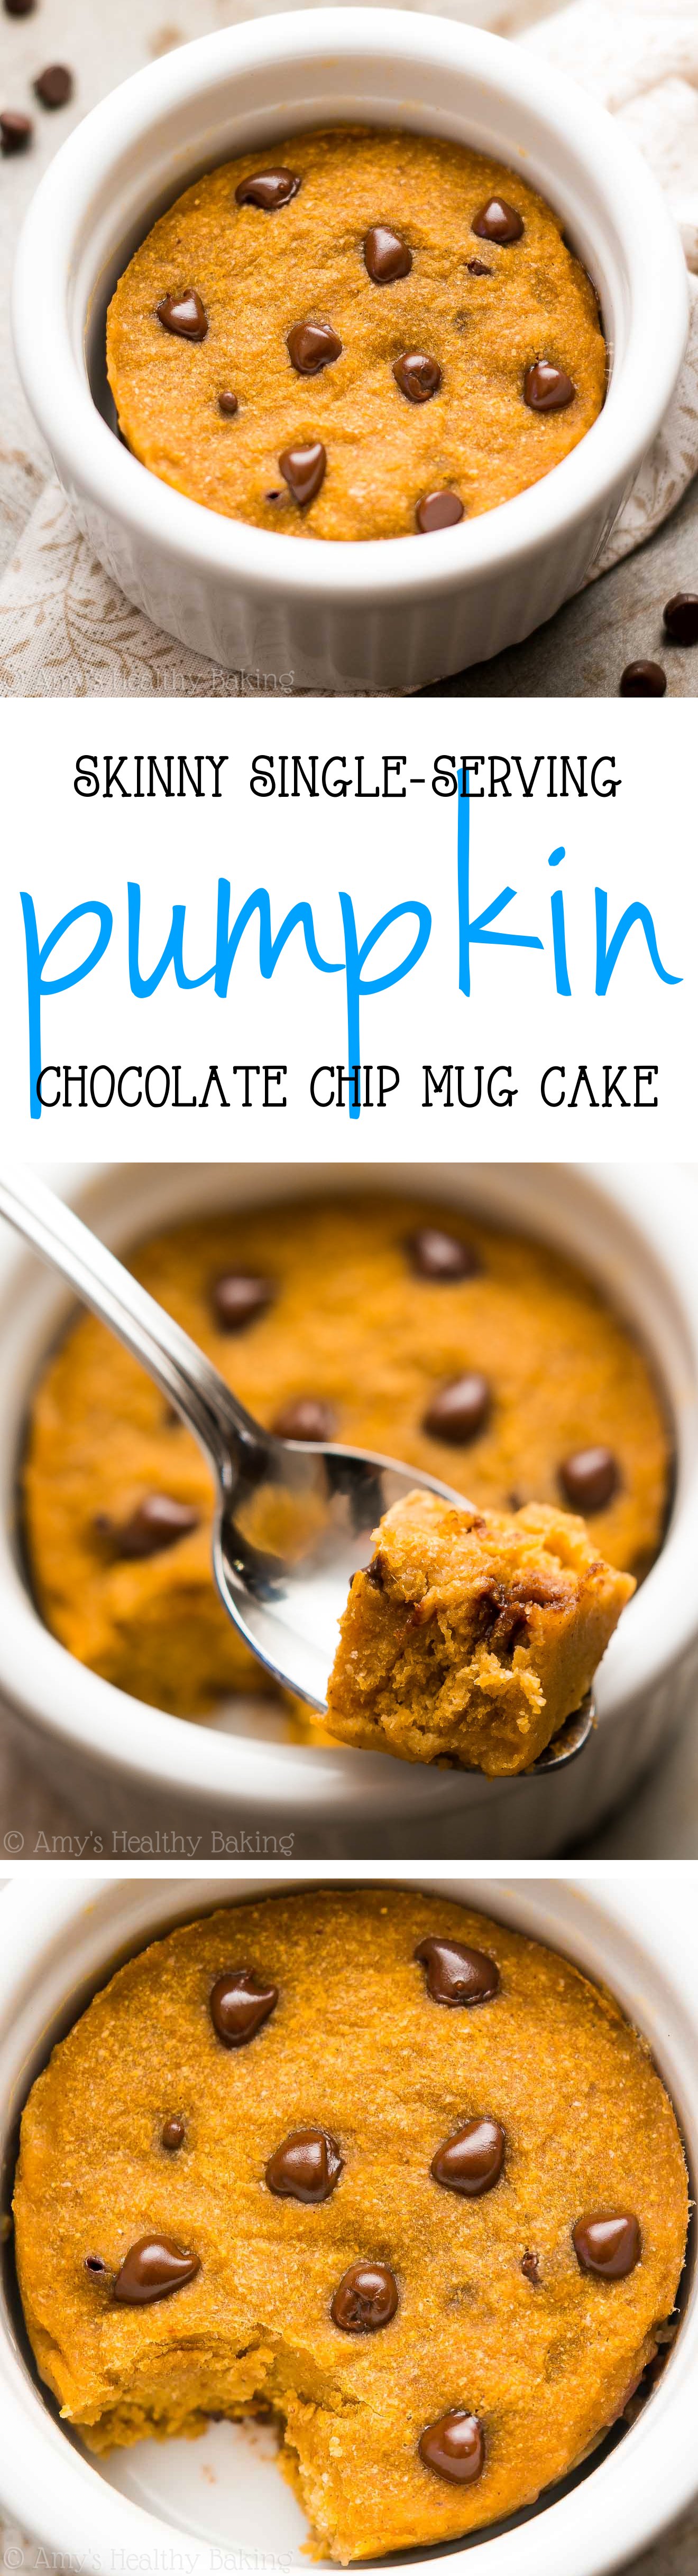 Skinny Single-Serving Pumpkin Chocolate Chip Mug Cake | Amy's ...